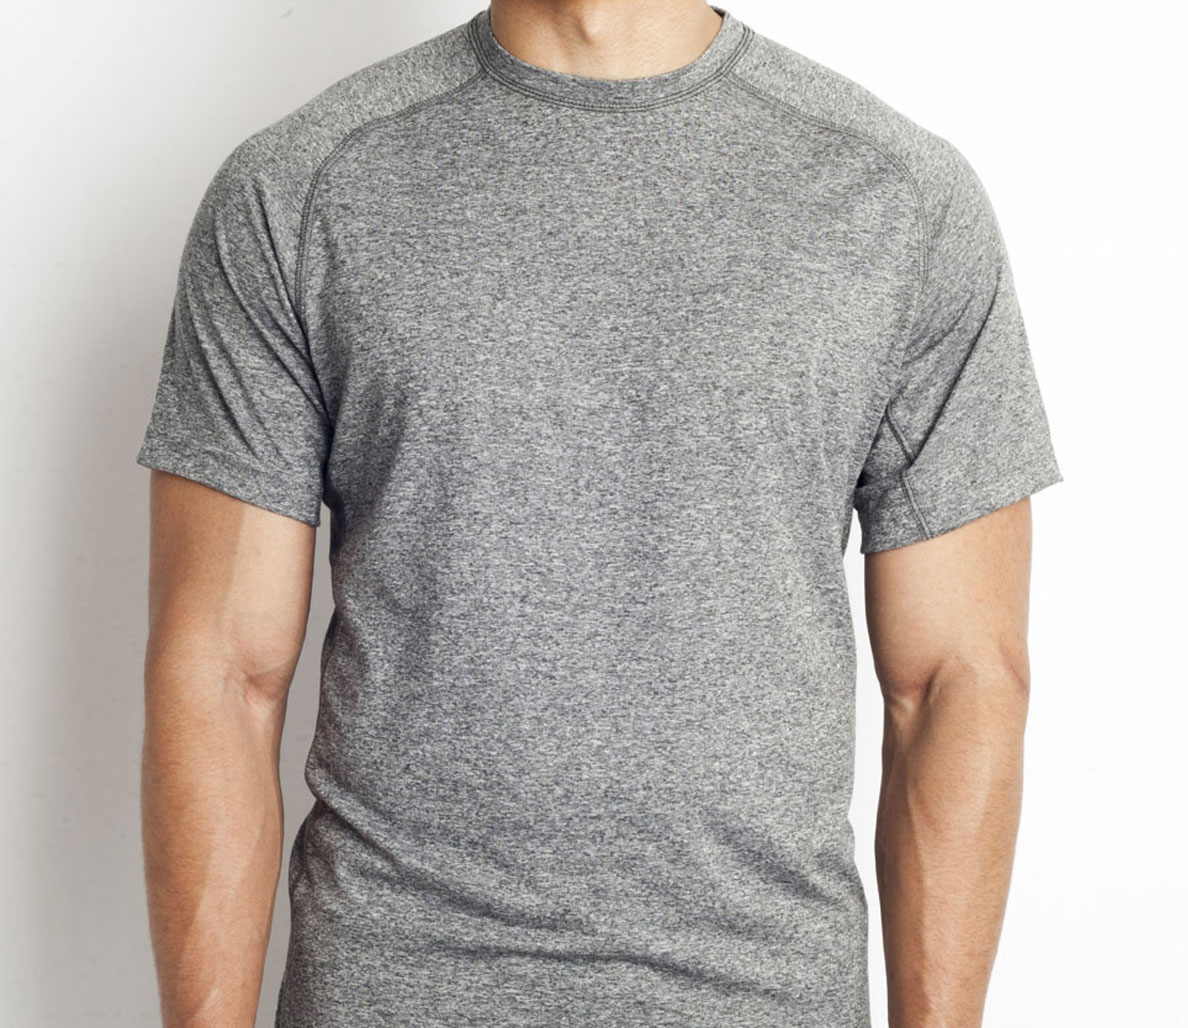 The 10 Best T Shirts For A Muscular Body